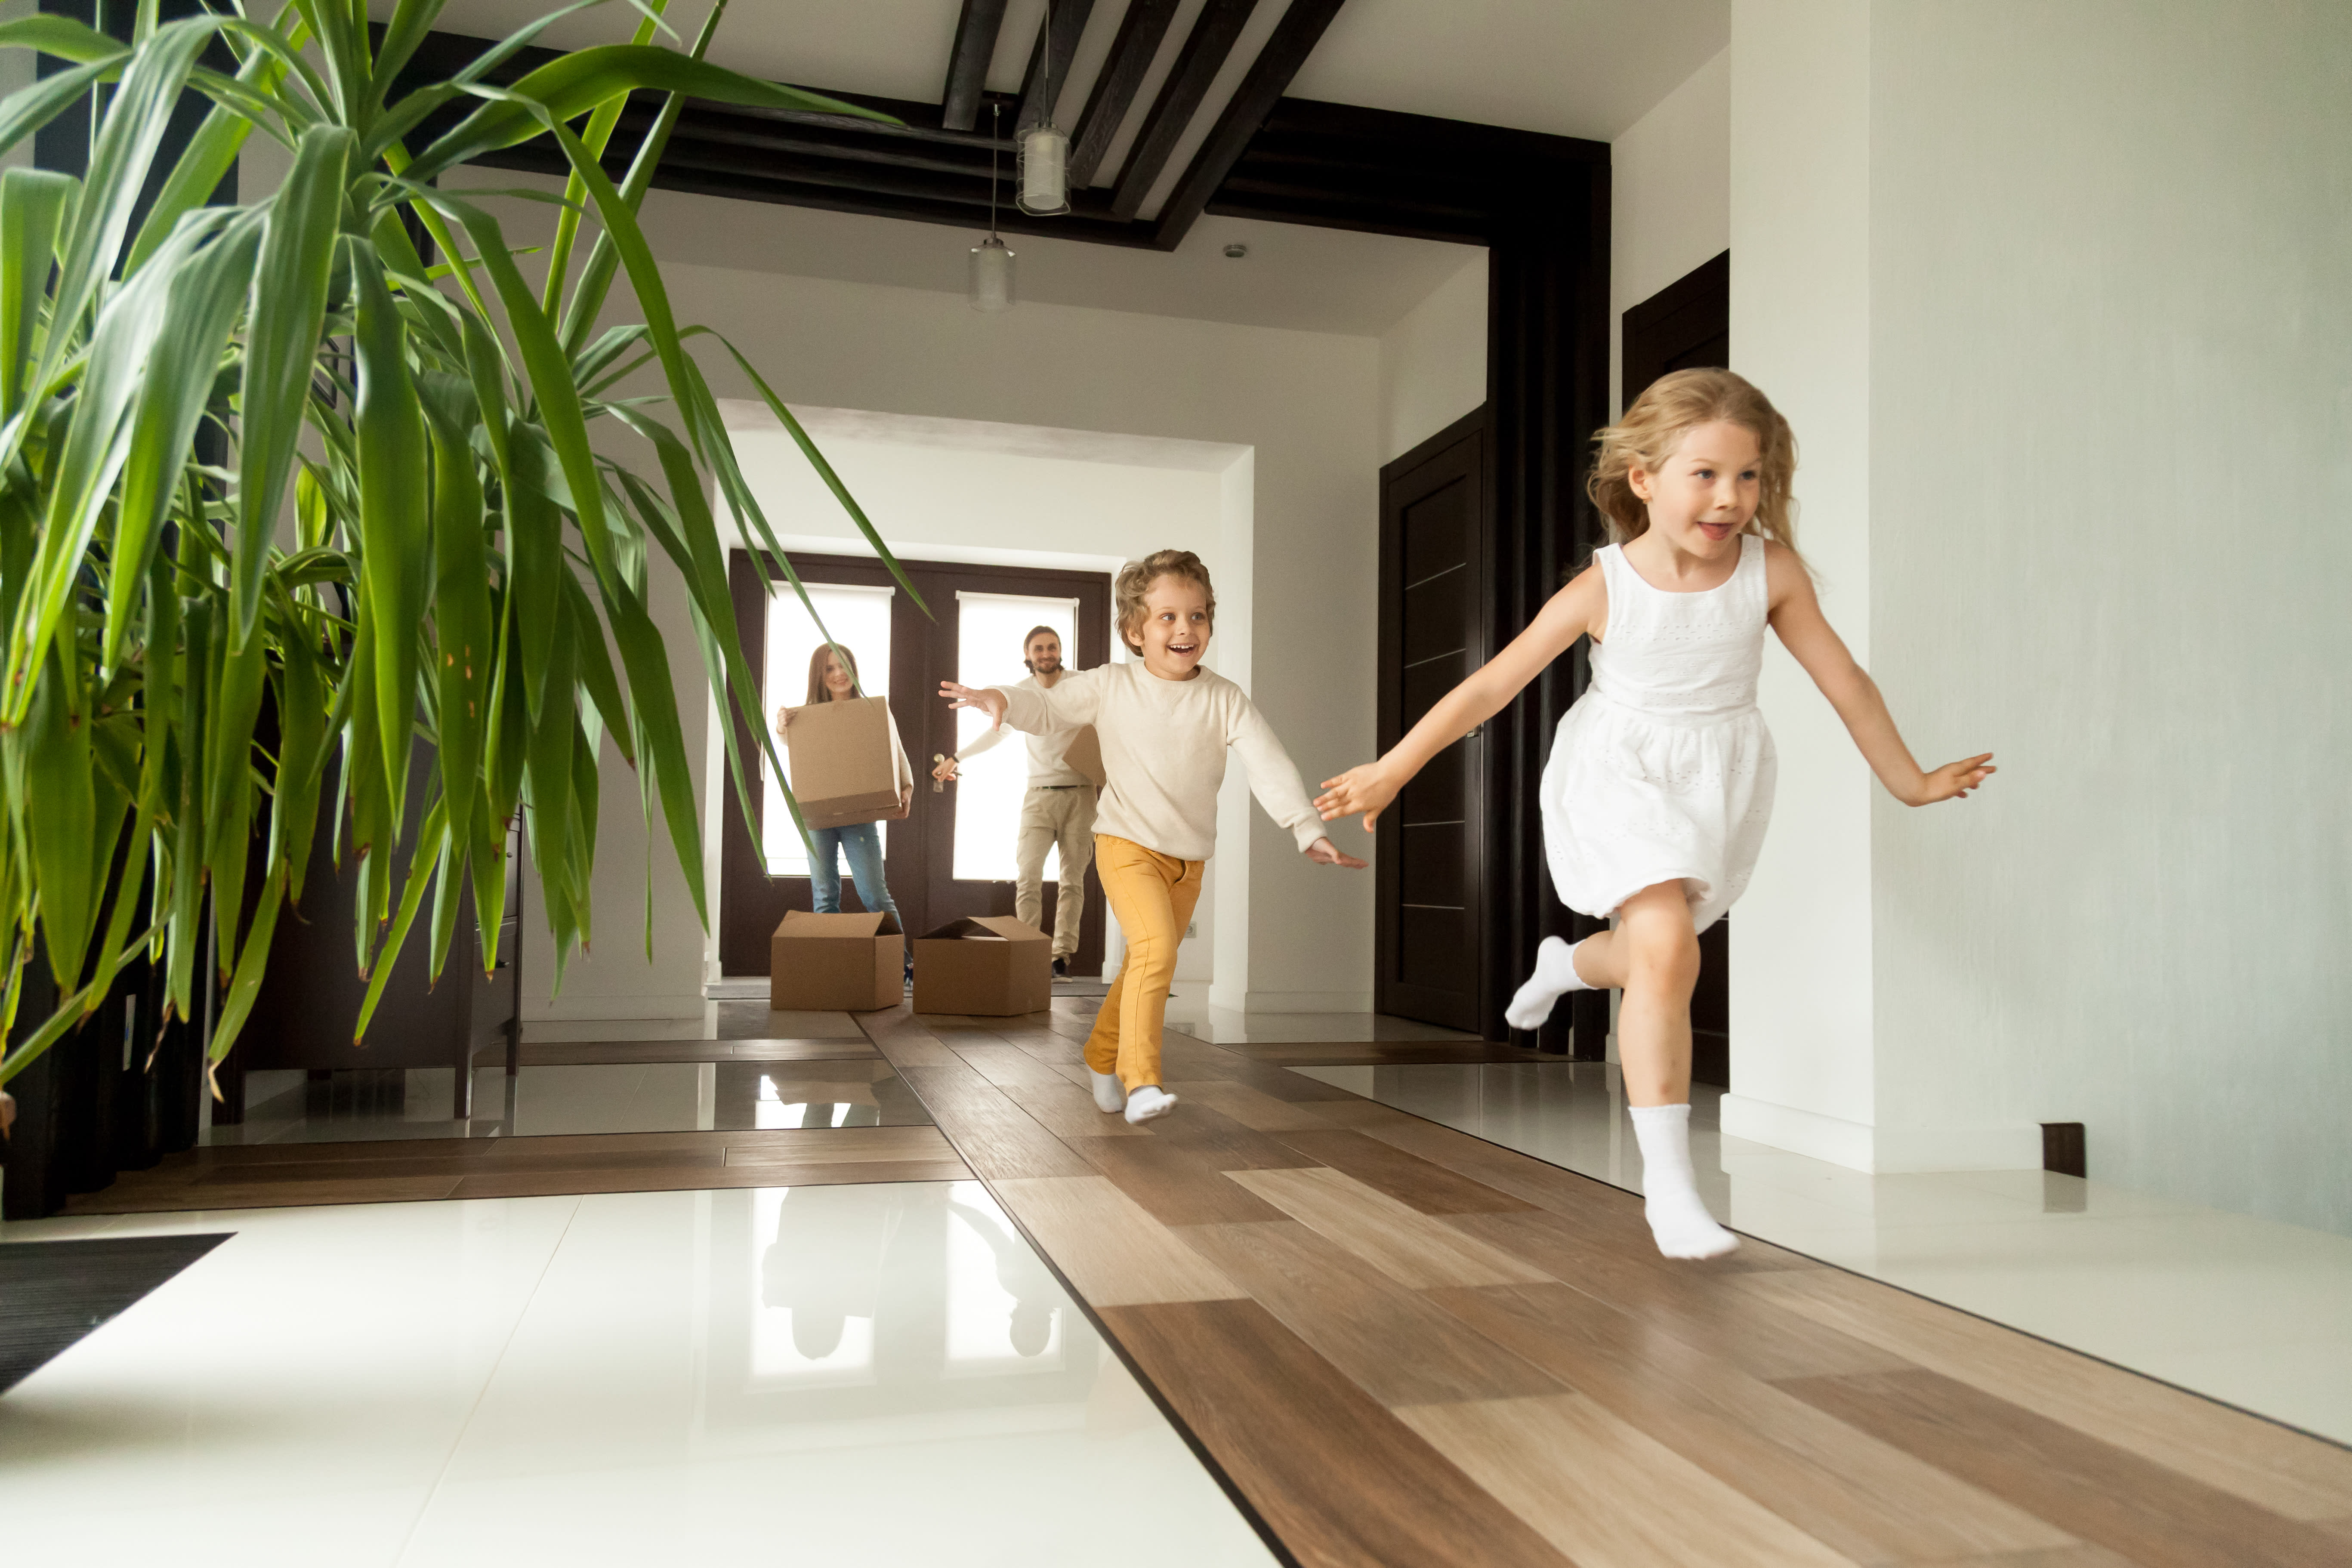 Looking to buy your first home? Check out our top 5 tips: Part 2